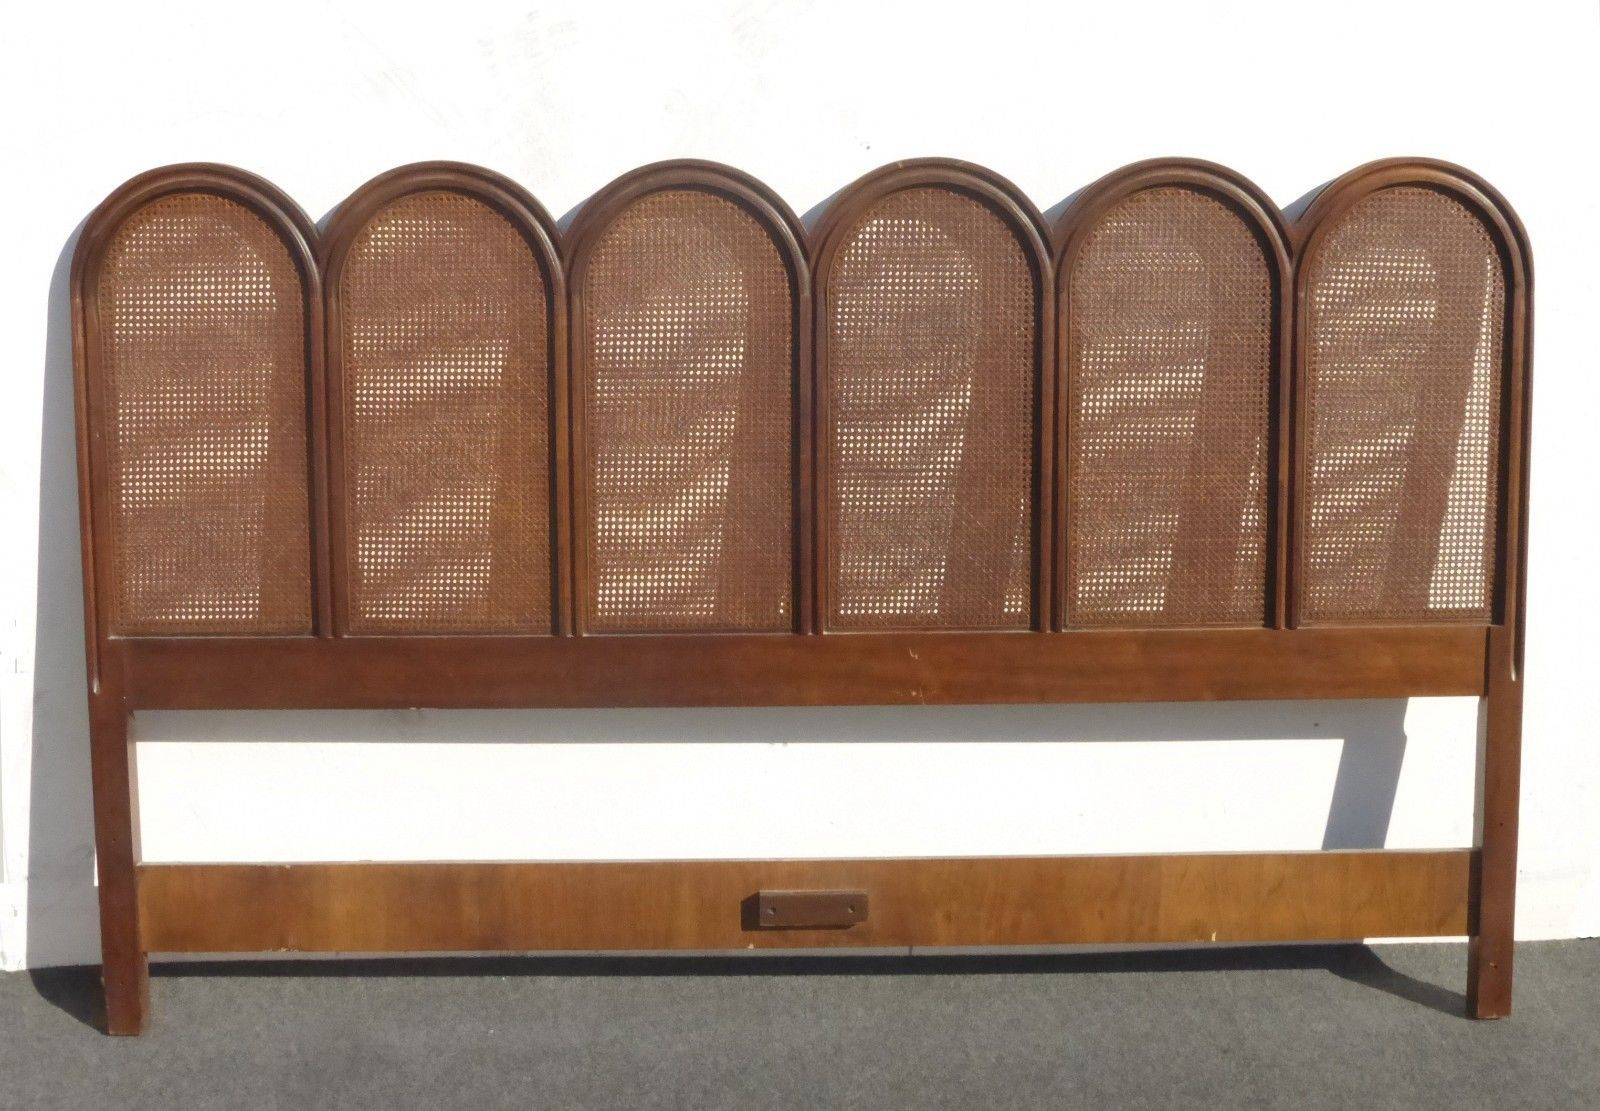 Vintage French Provincial Cane King Headboard By Drexel Heritage Ebay King Headboard French Provincial French Vintage